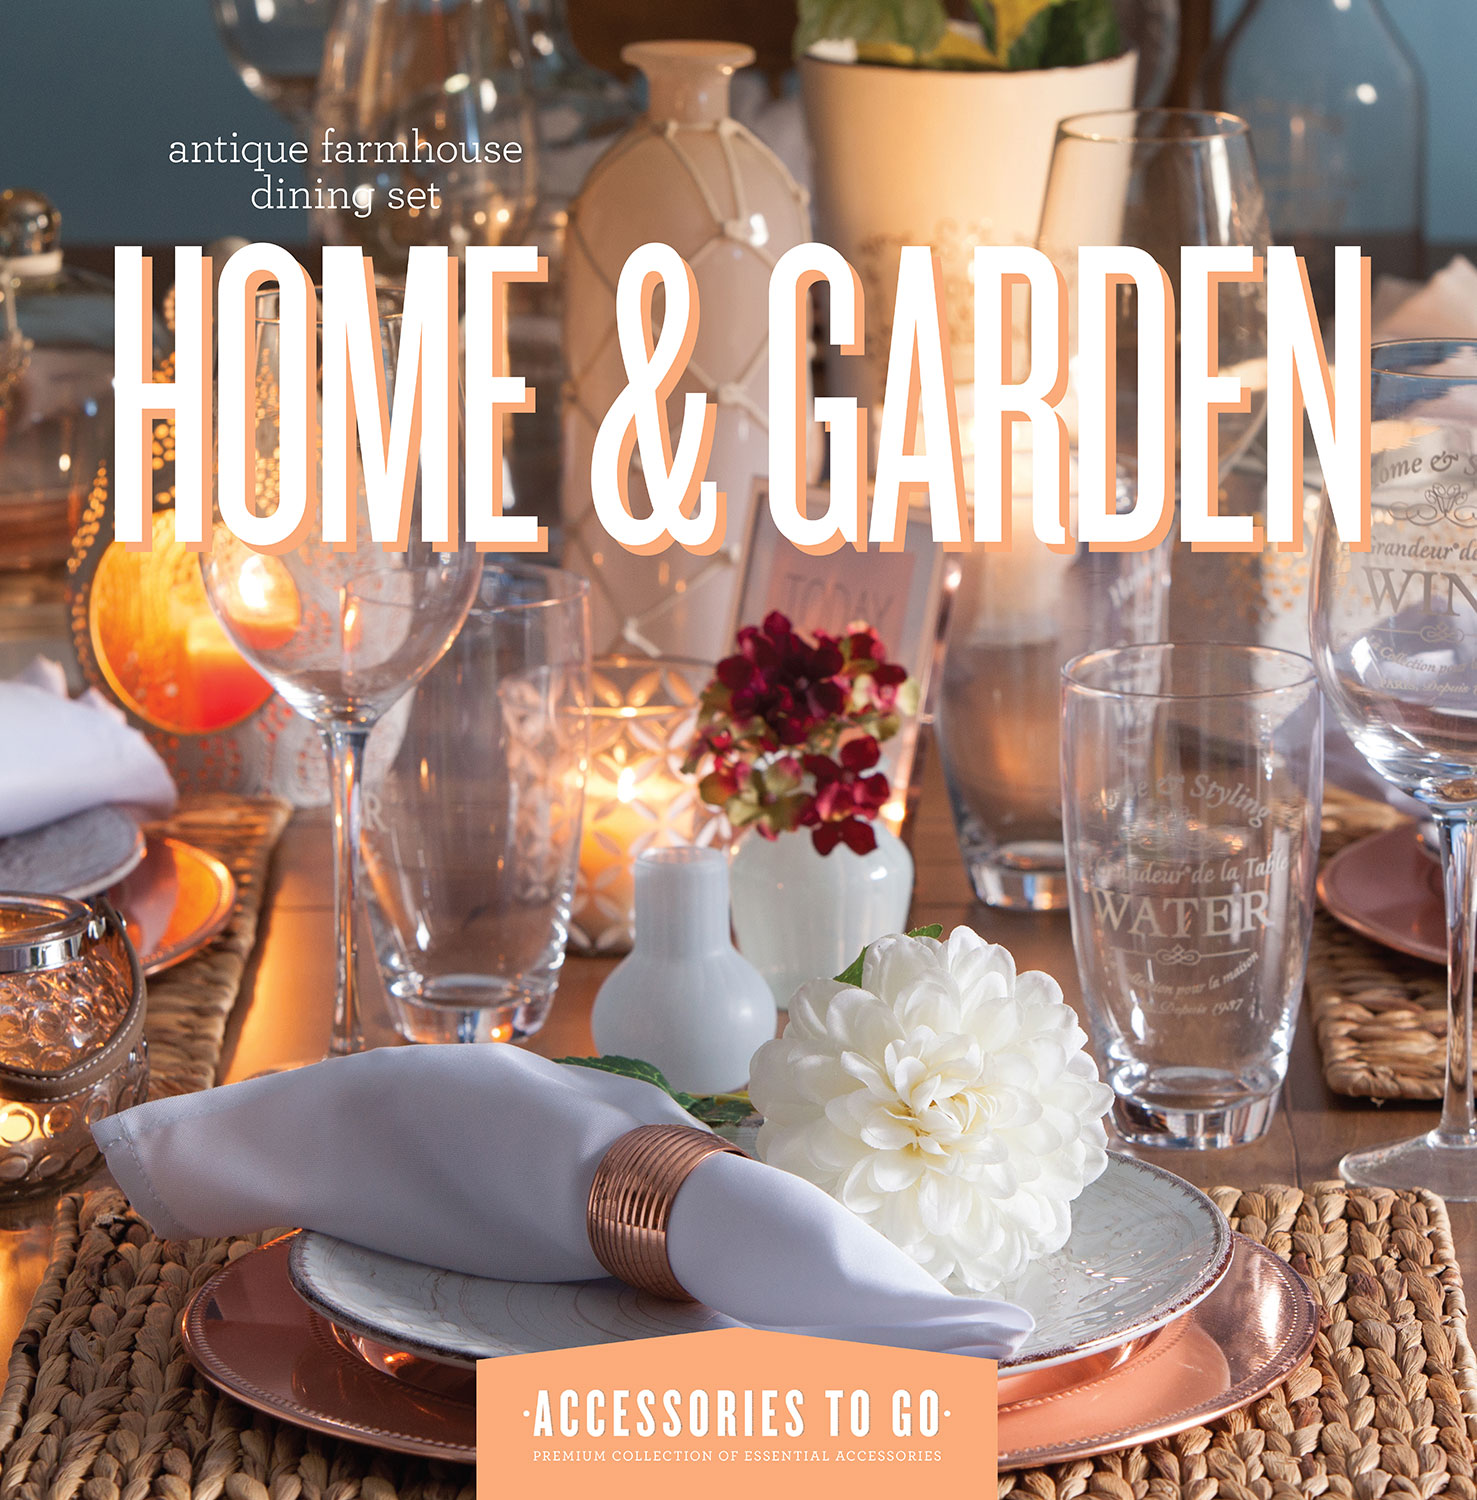 Home Accessories - Home & Garden 63-Piece Accessory Set